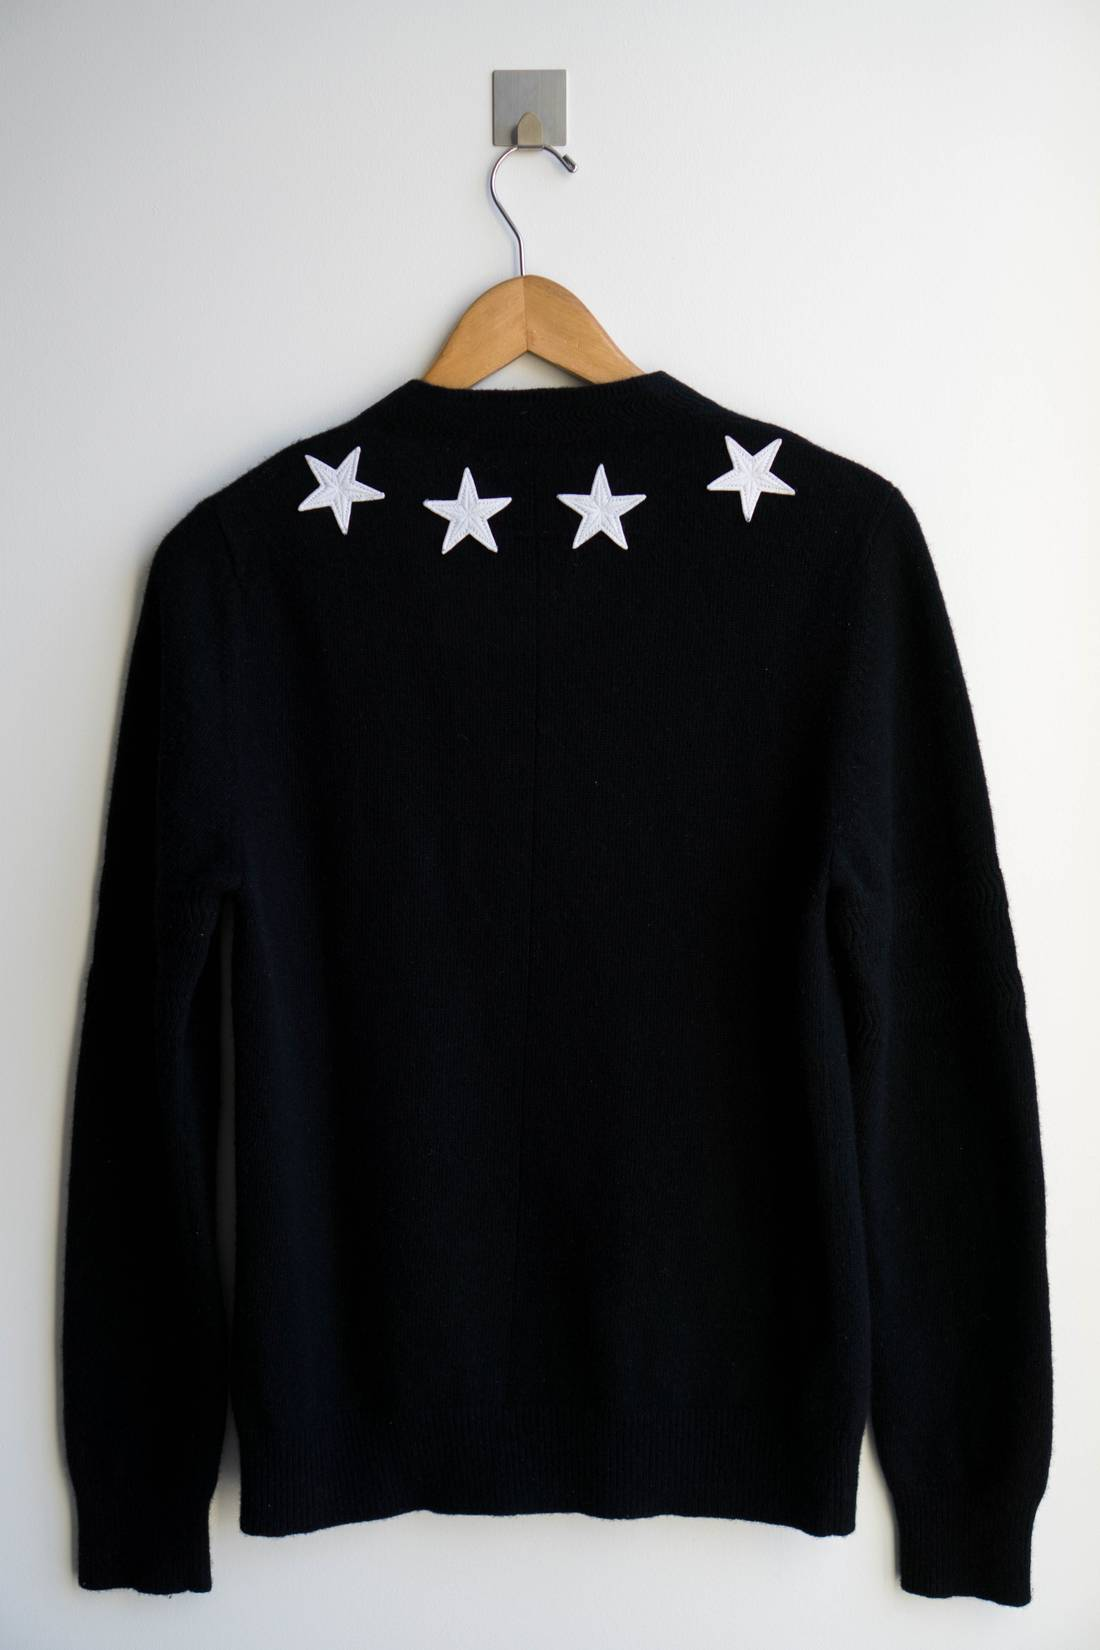 Black and White Stars Sweater Givenchy Recommend Cheap Free Shipping Outlet Locations tBLJgU